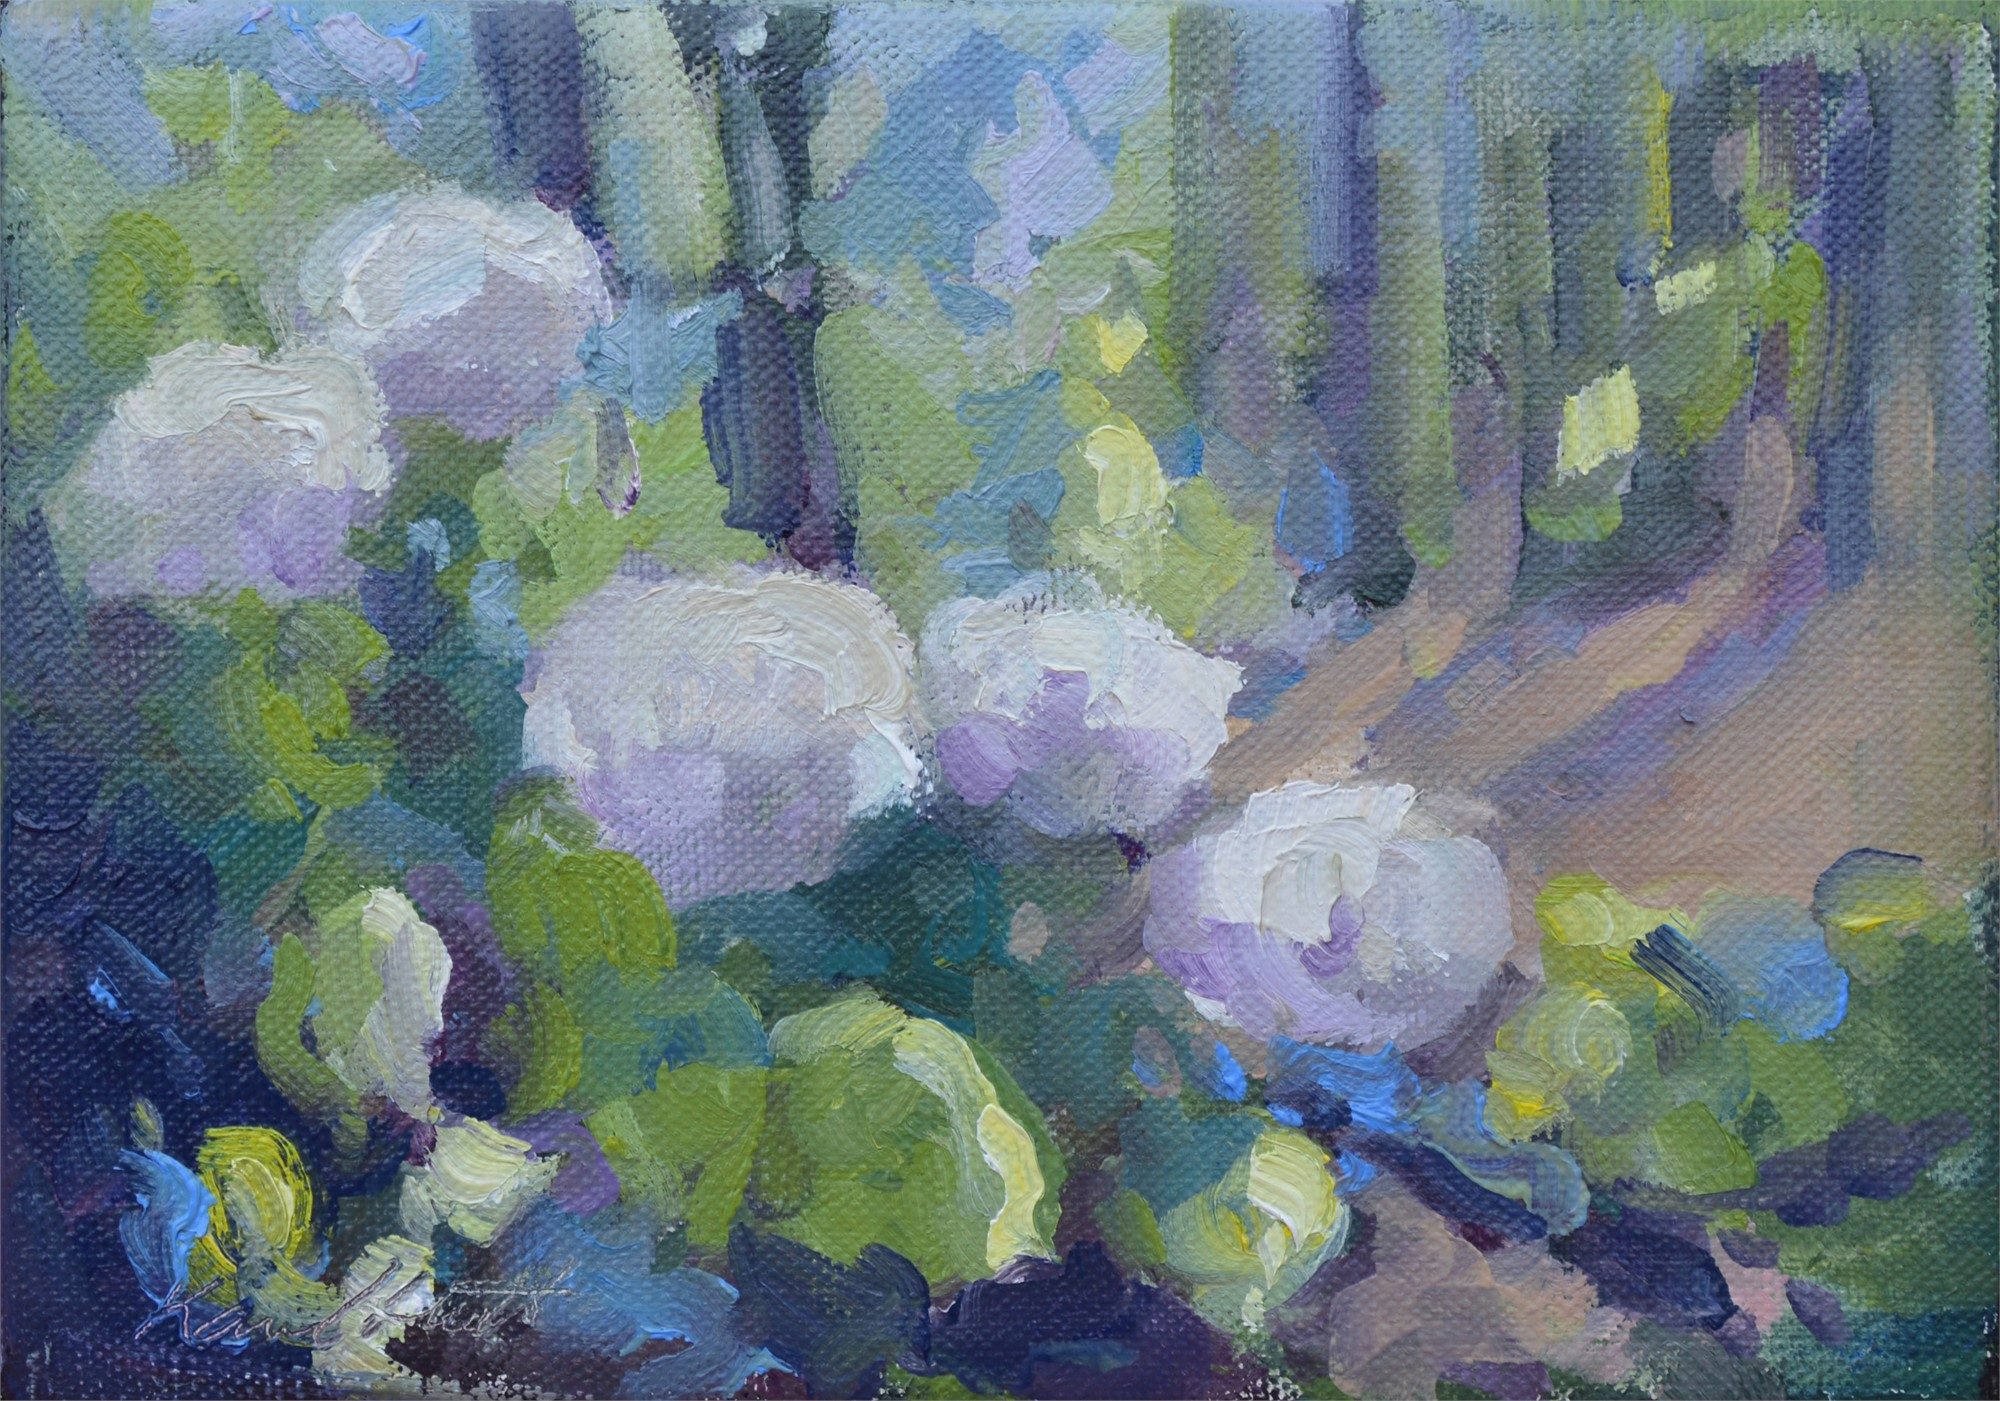 Hydrangeas in Sunlight by Karen Hewitt Hagan